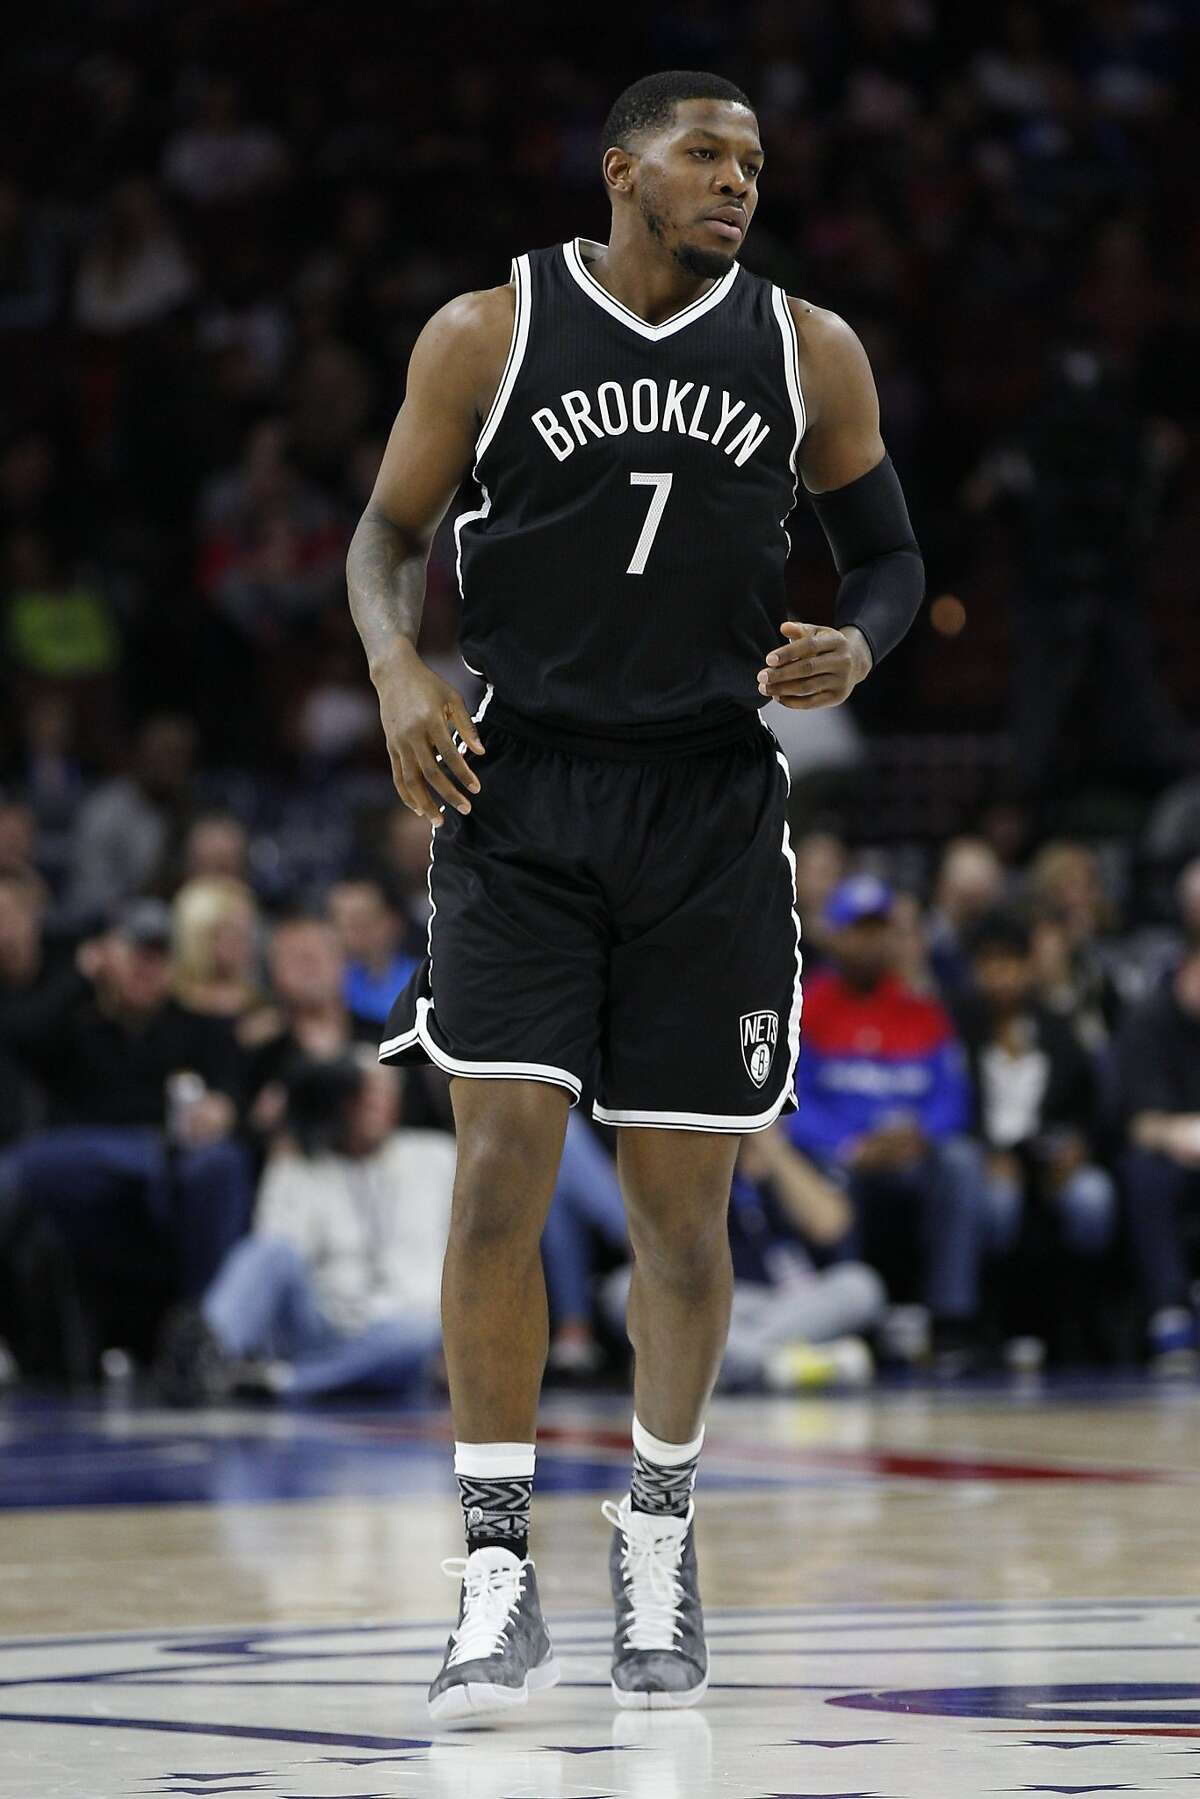 Brooklyn Nets' Joe Johnson (7) in action during the first half of an NBA basketball game against the Philadelphia 76ers, Saturday, Feb. 6, 2016, in Philadelphia. The 76ers won 103-98. (AP Photo/Chris Szagola)